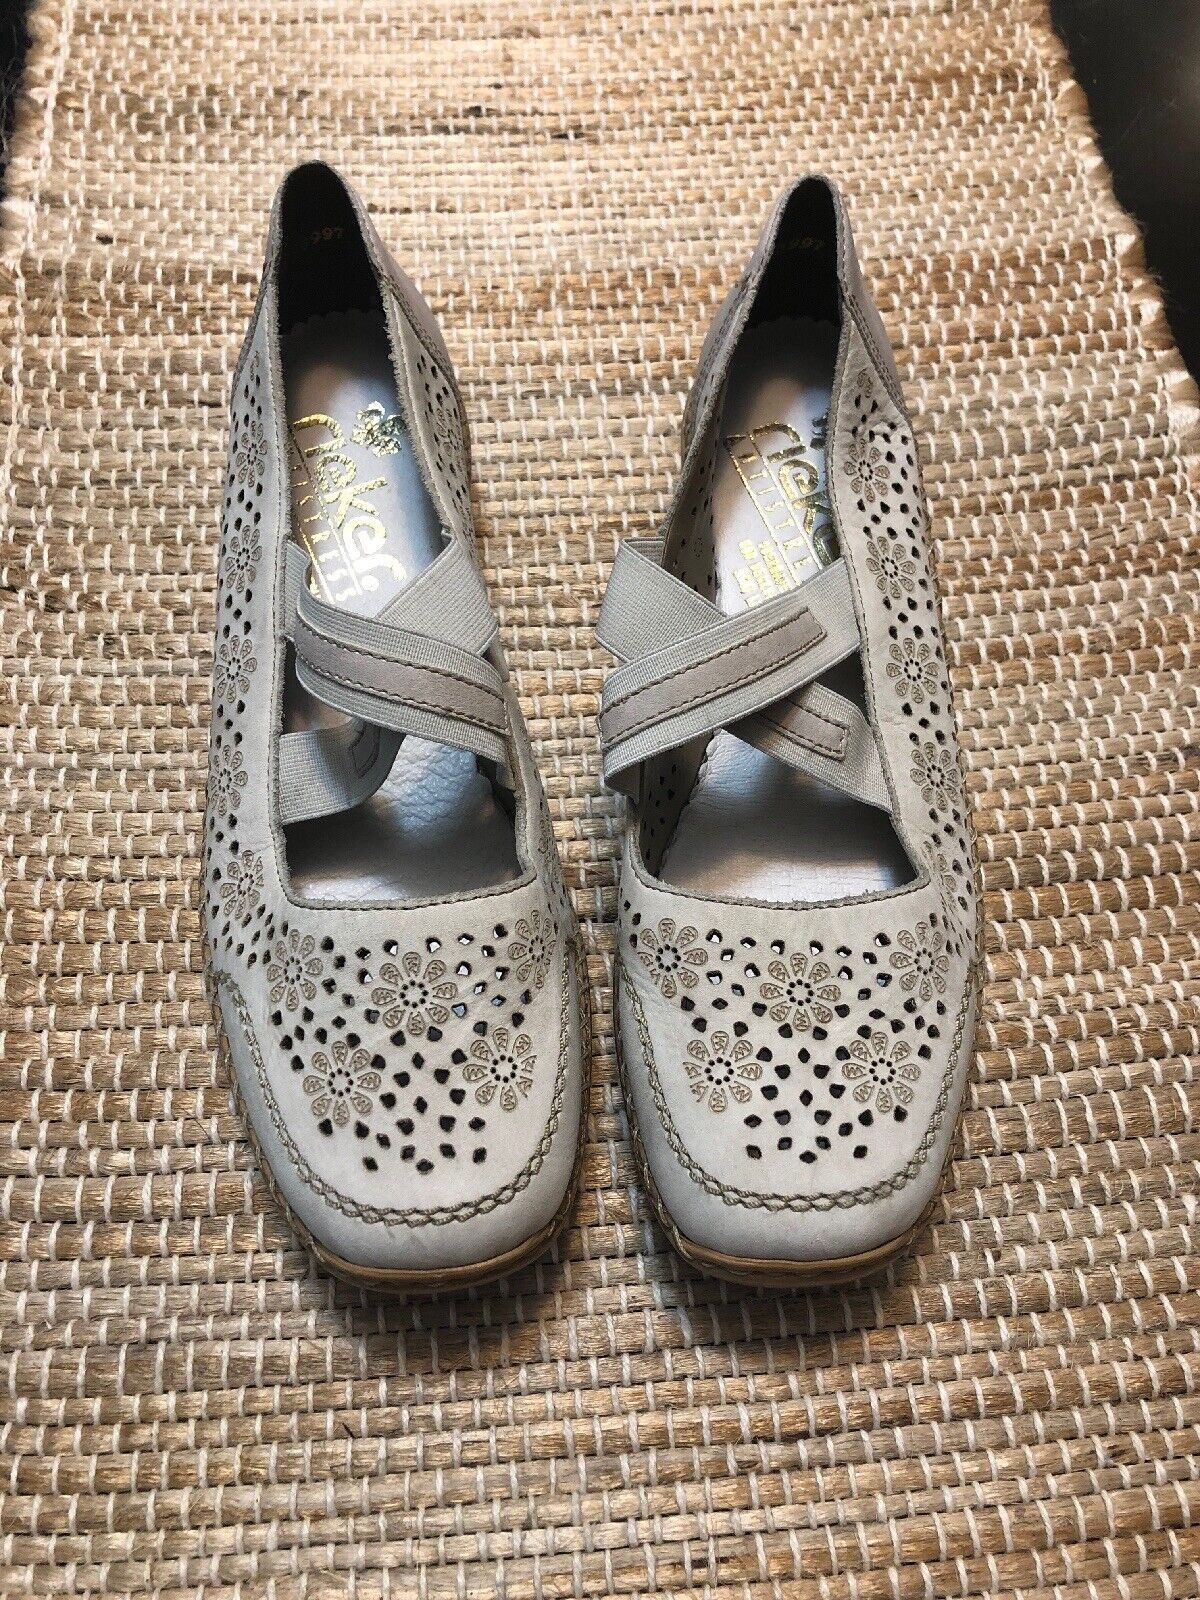 RIEKER Antistress Perforated Ivory Leather Driving Moccasins Loafer shoes 37 New